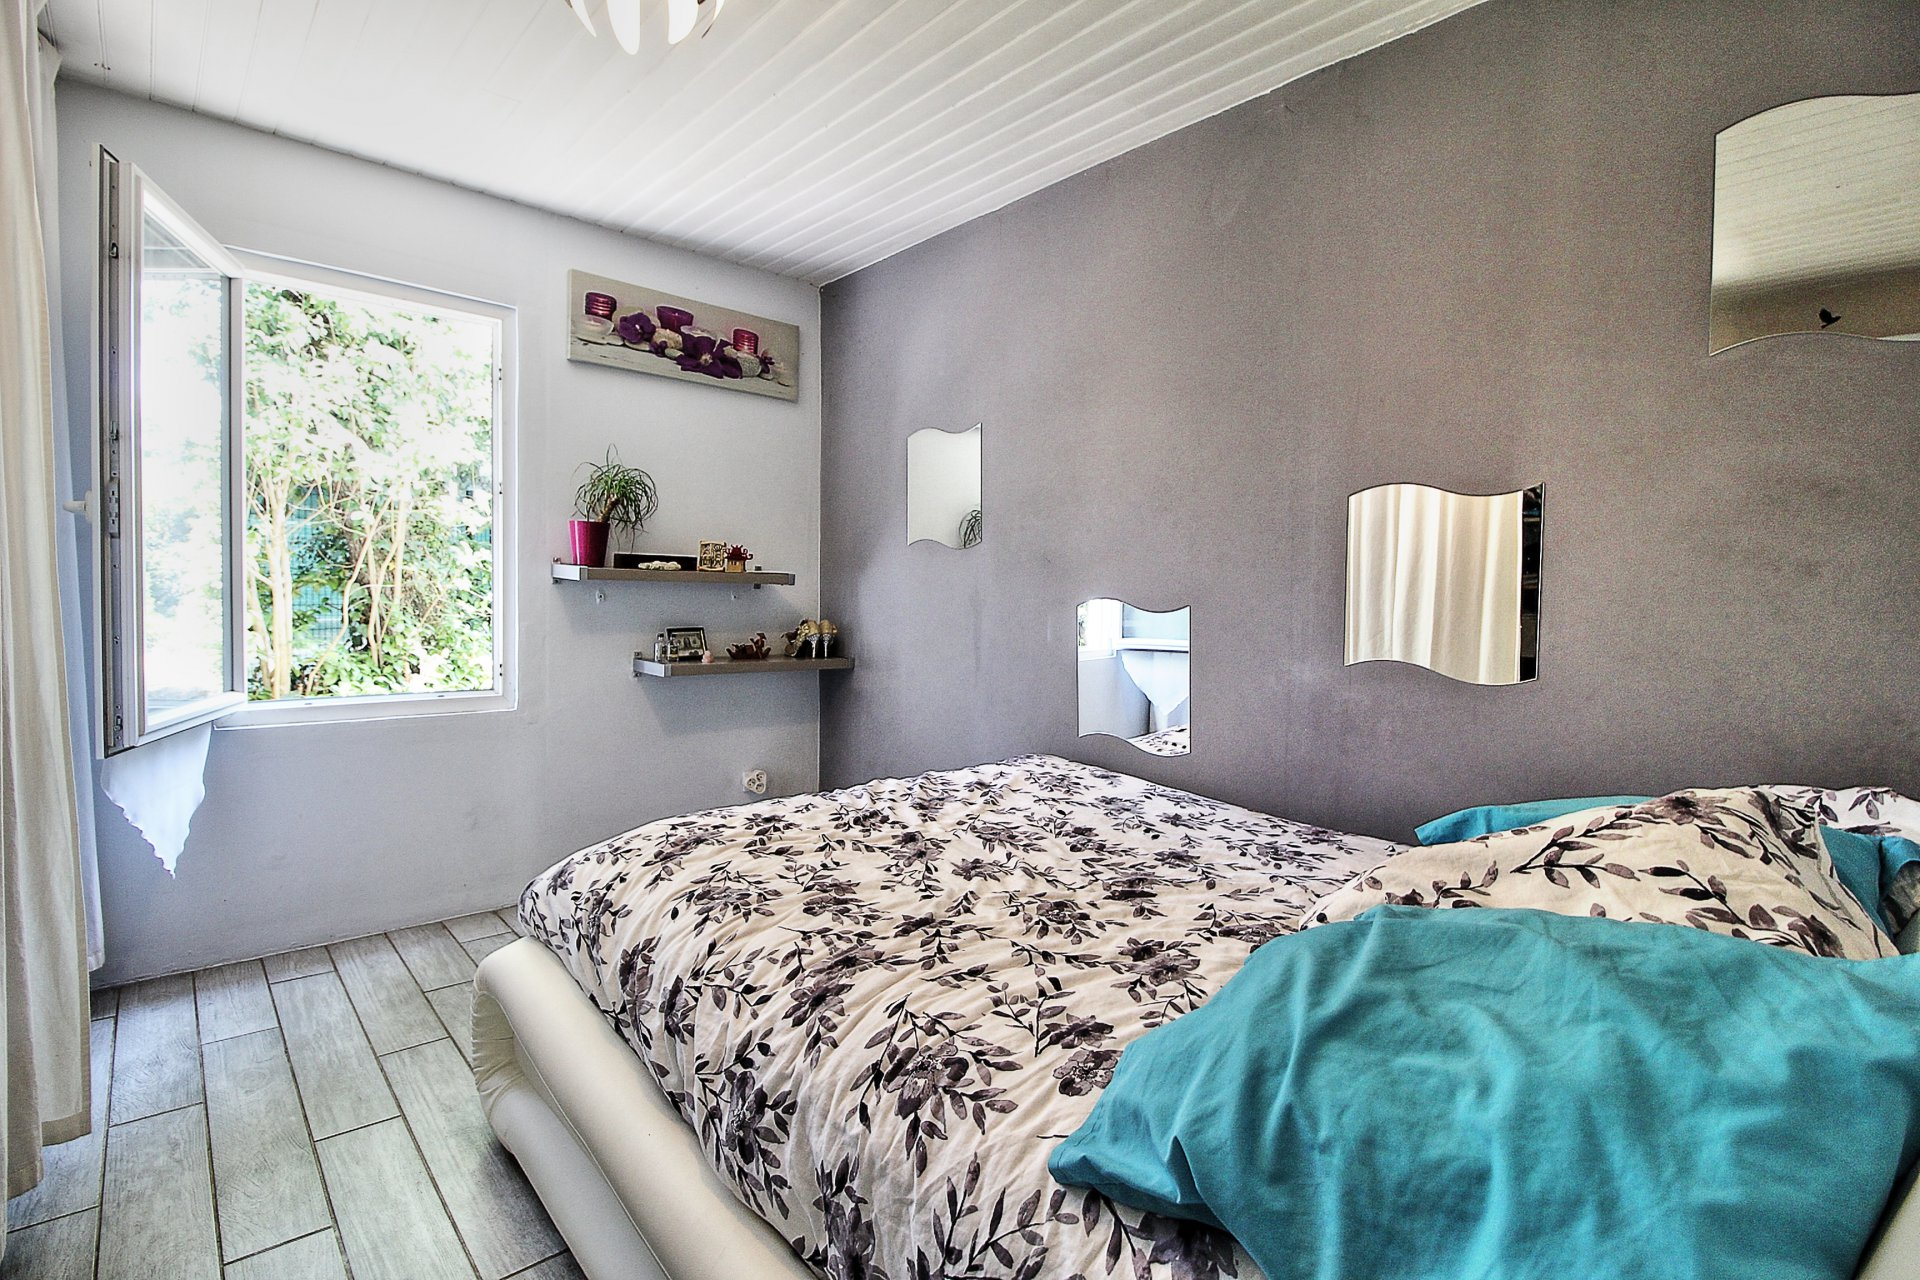 FAYENCE VENTE MAISON INDIVIDUELLE 2 CHAMBRES